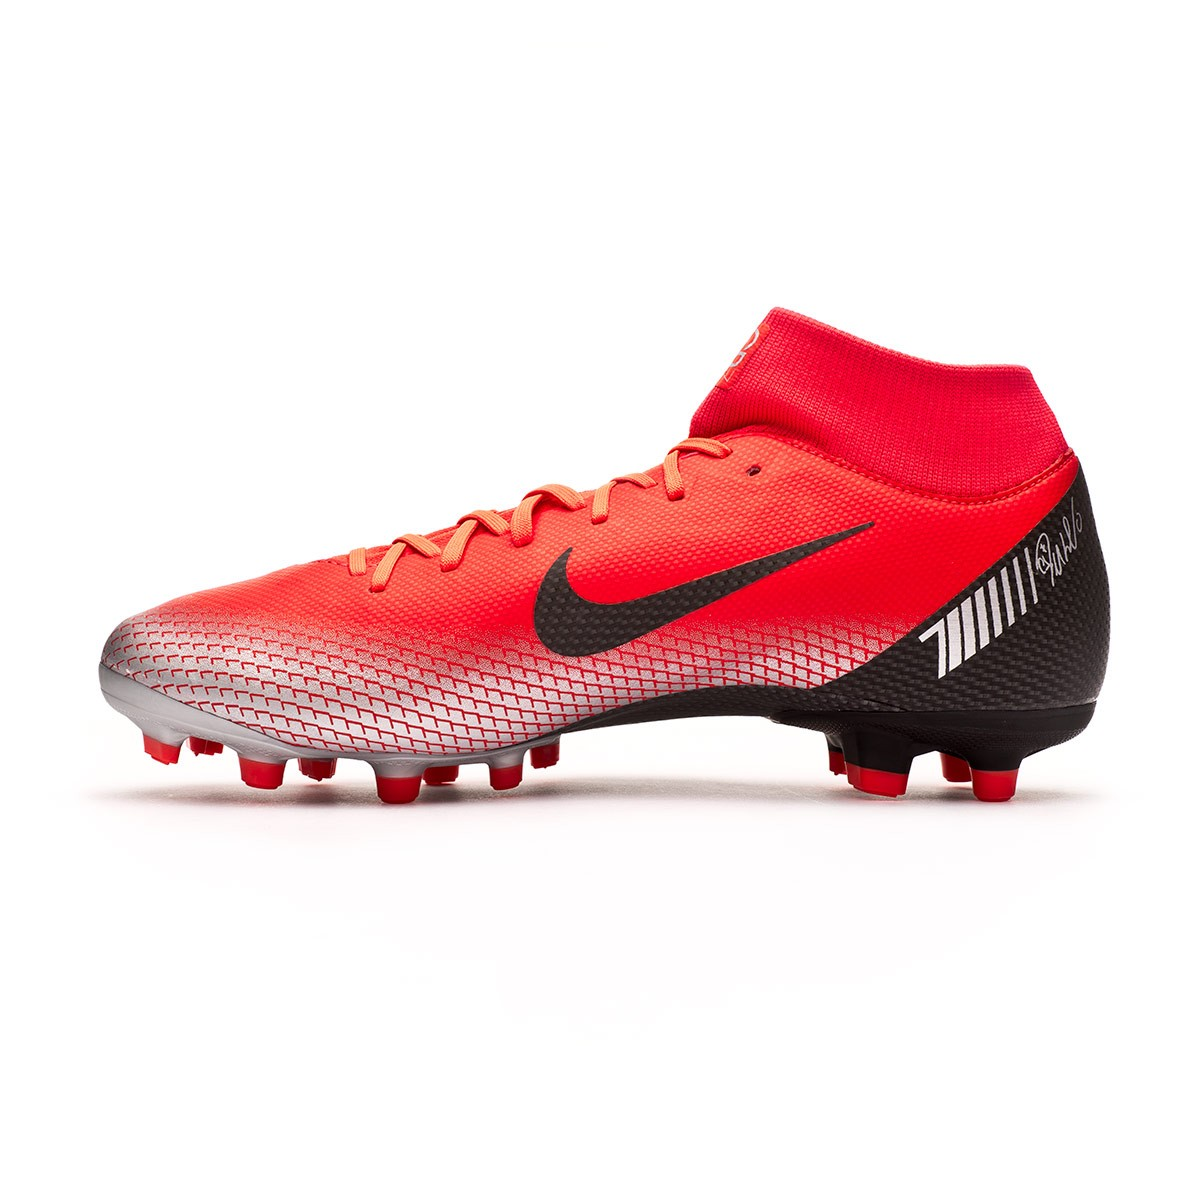 e27ea08b8d9 Scarpe Nike Mercurial Superfly VI Academy CR7 MG Bright crimson-Black-Chrome-Dark  grey - Negozio di calcio Fútbol Emotion